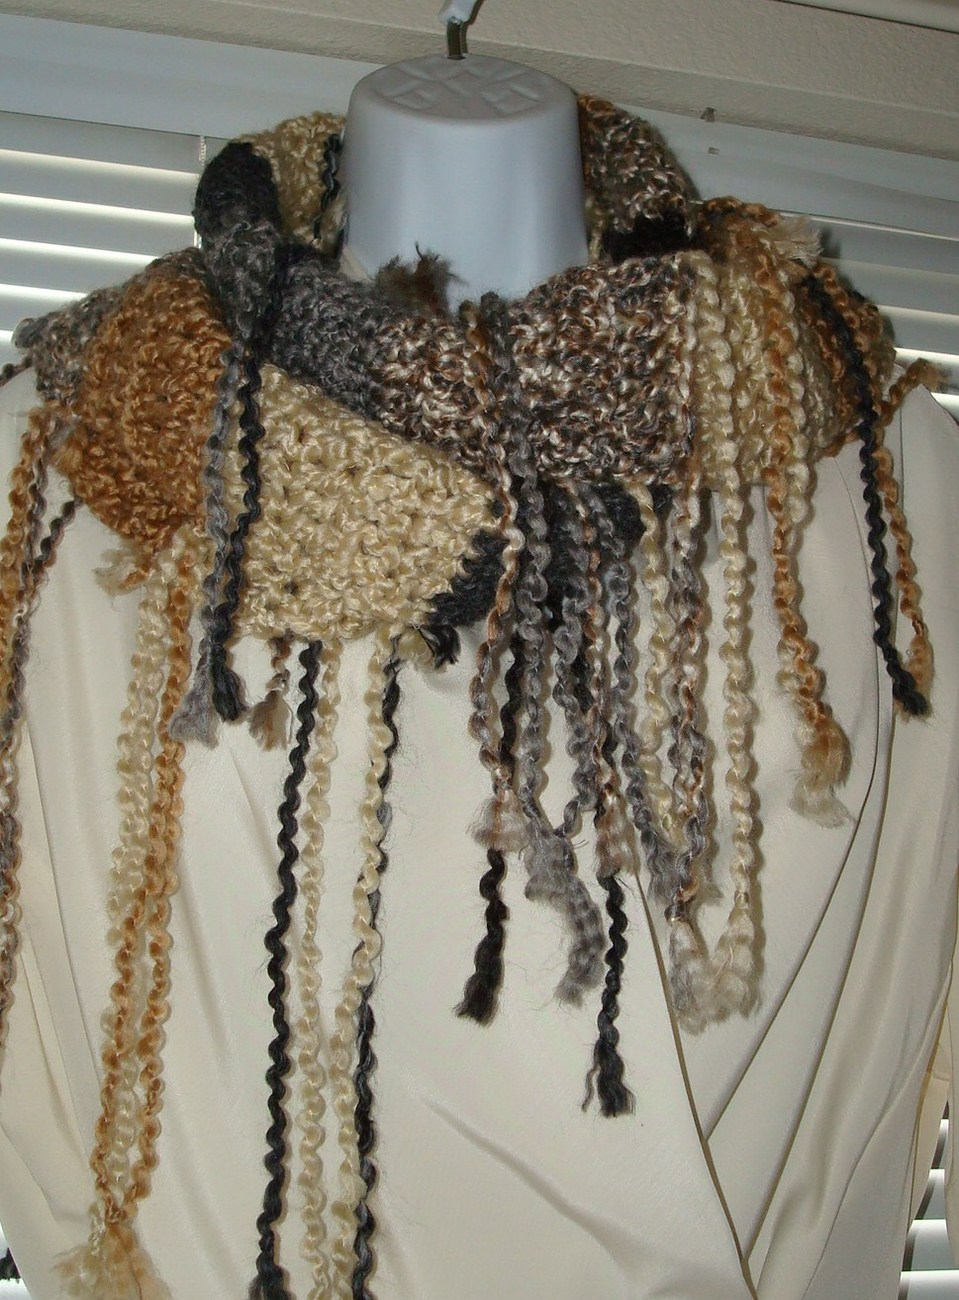 Raggamuffin_all_over_fringe_scarf_earth_tones_6_colors_